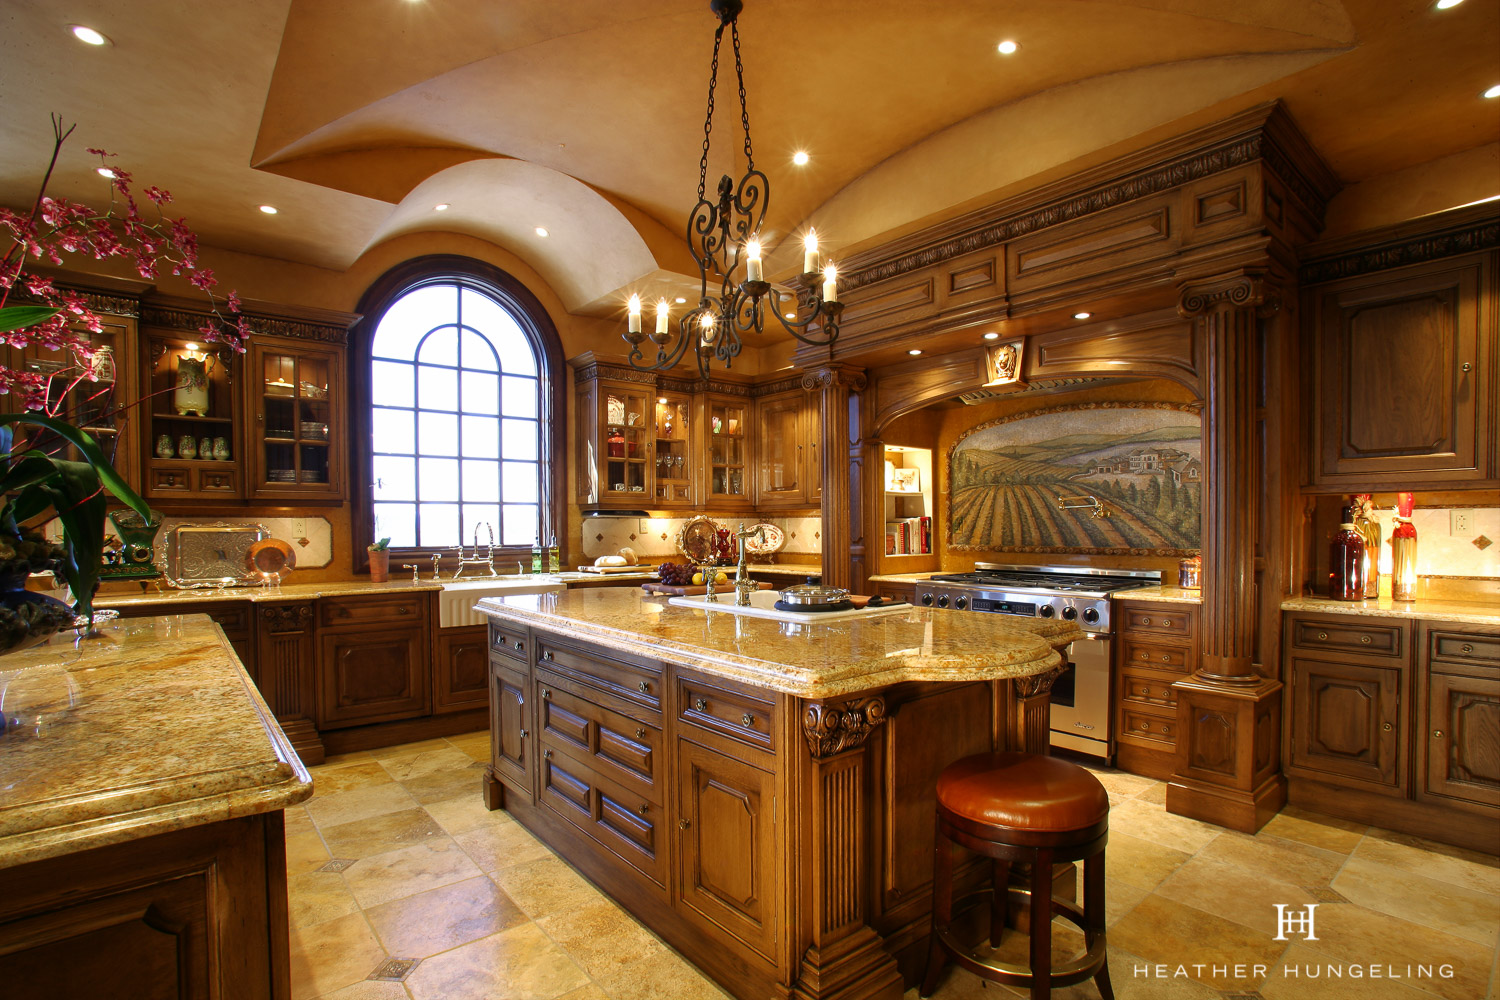 This amazing estate home has the ultimate luxury Tuscan-style kitchen, featuring Clive Christian cabinetry. Designed by Heather Hungeling